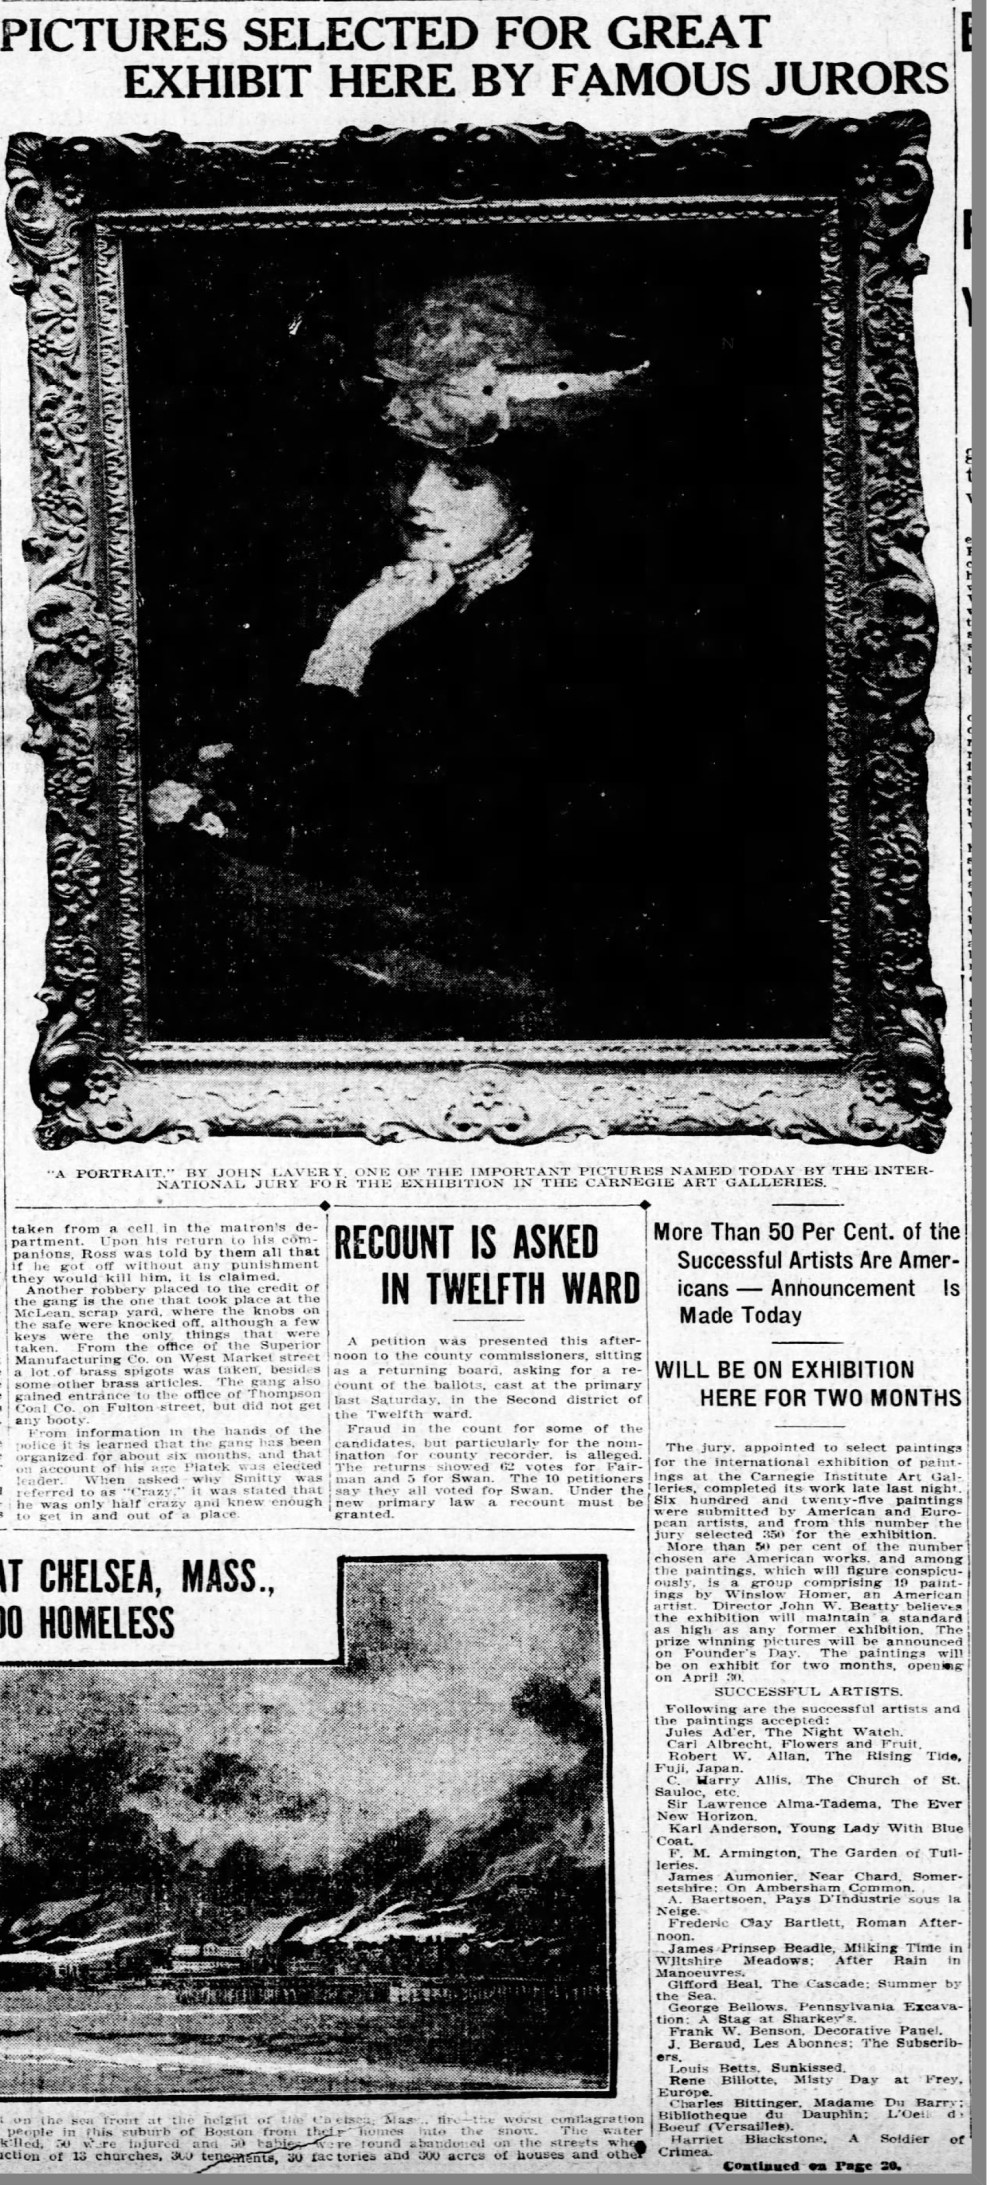 """Pittsburgh Press, Pittsburgh, PA, """"Pictures selected for great exhibit"""", Wednesday, April 15, 1908, main edition, page 20, not illustrated"""